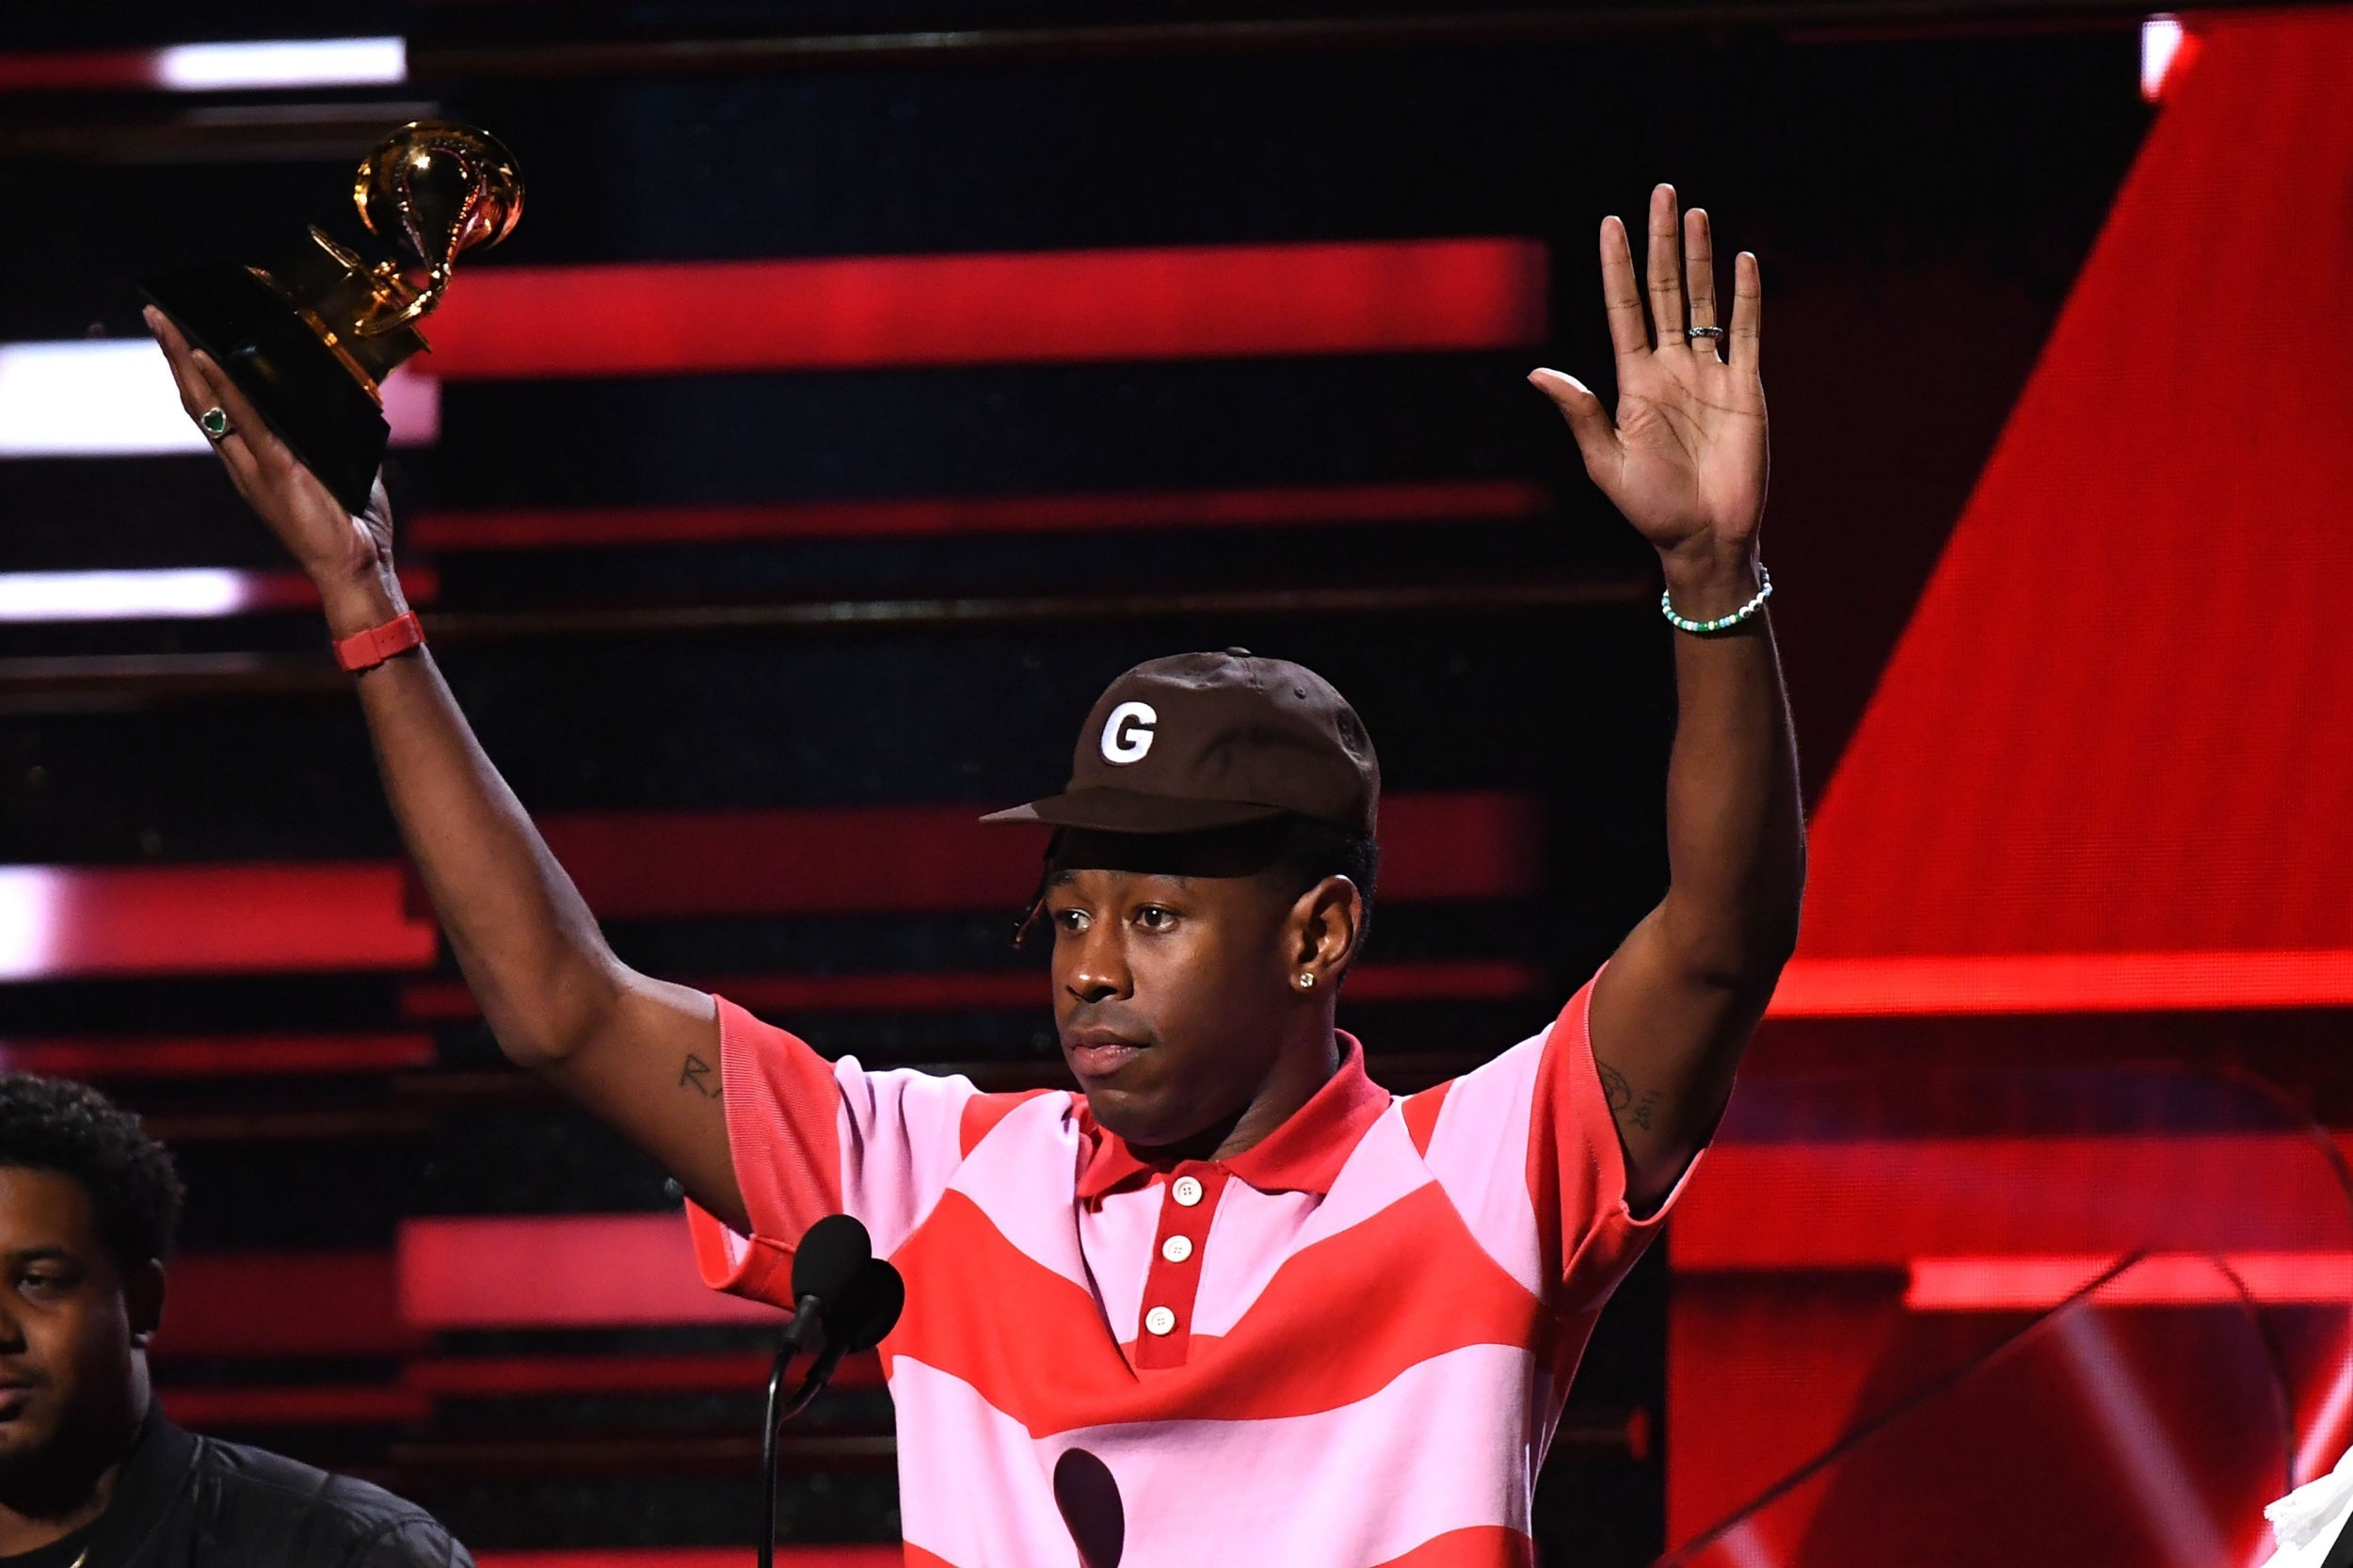 Tyler the Creator saved a tweet from nine years ago that claimed he'd never win a Grammy